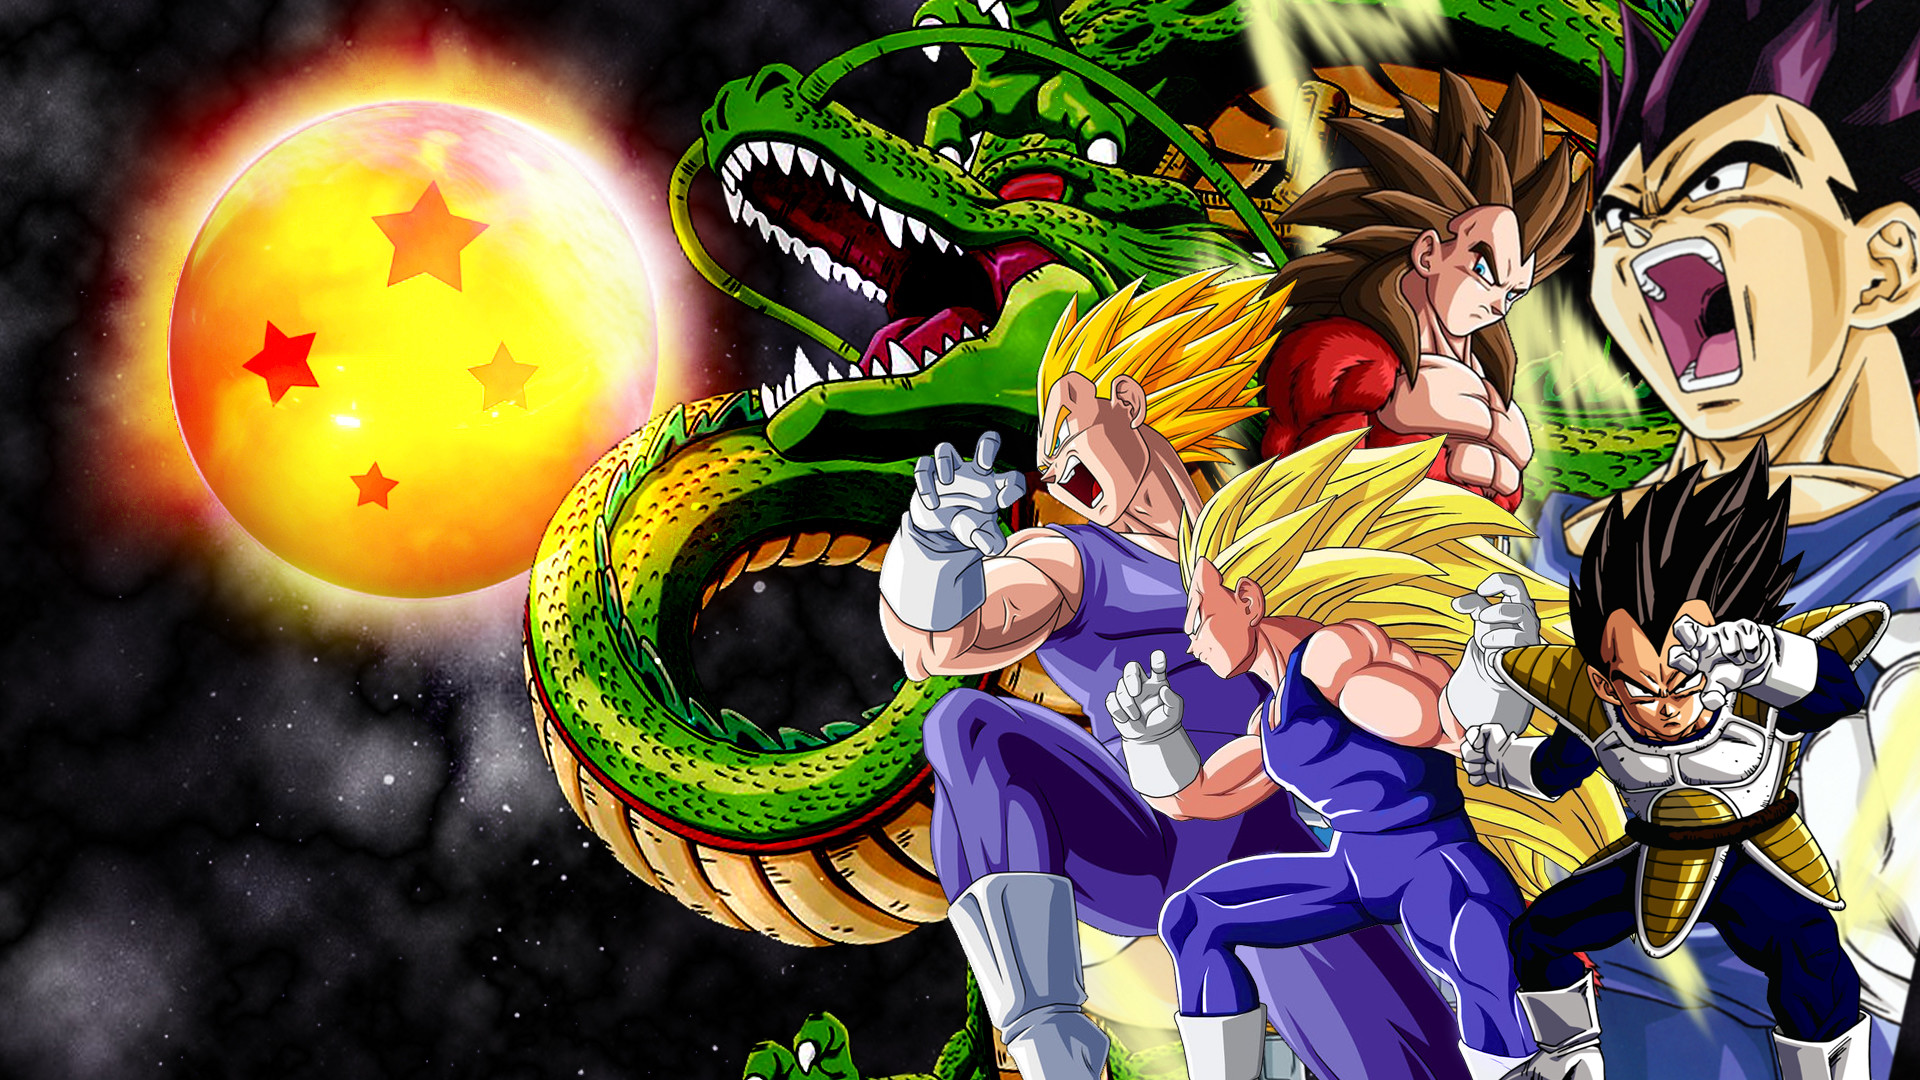 Dragon ballz wallpapers 73 images - Vegeta wallpapers for mobile ...